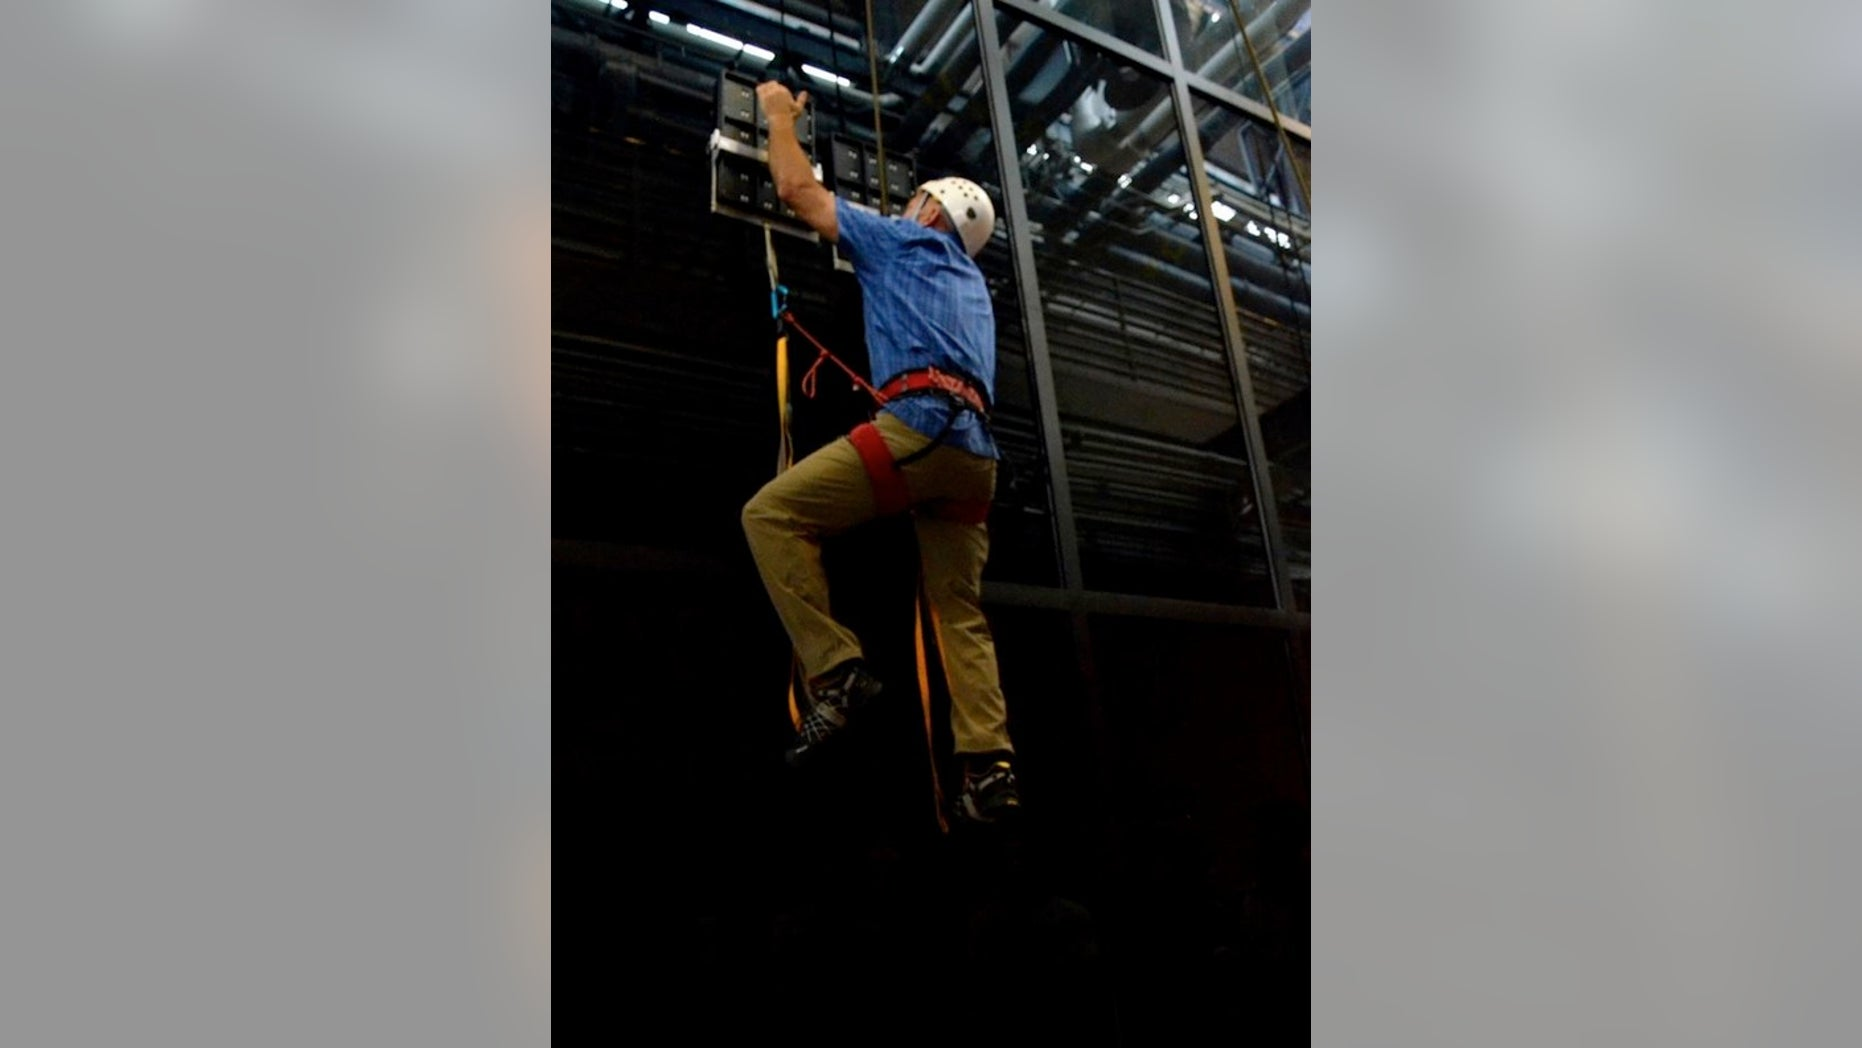 During testing, an operator climbed 25 feet vertically on a glass surface using no climbing equipment other than a pair of hand-held, gecko-inspired paddles. The climber wore, but did not require, the use of a safety belay.